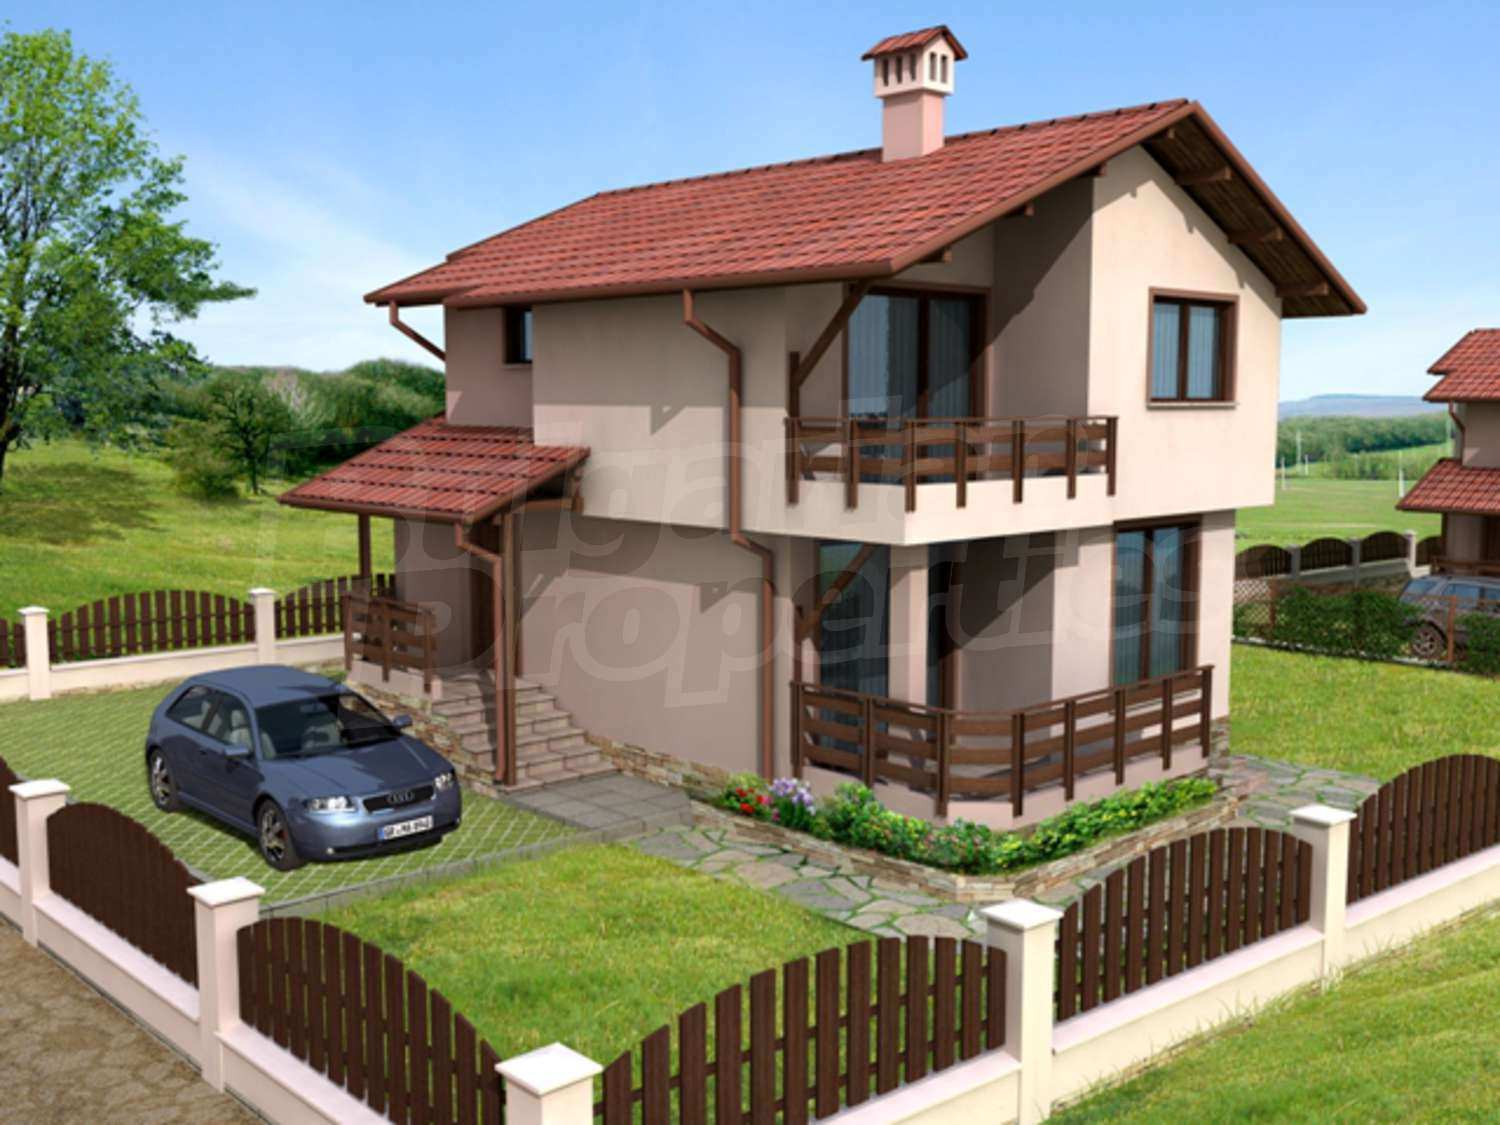 Pictures Of Nice Houses house for sale near byala (varna), byala, bulgaria. two nice